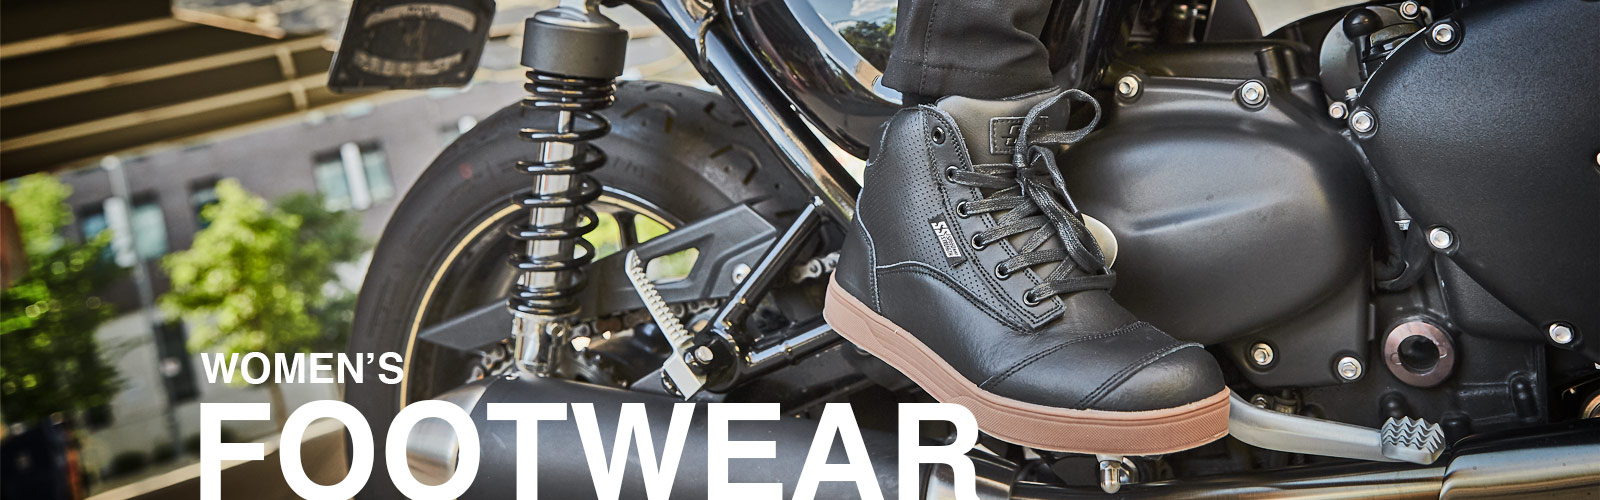 Speed and Strength Women's Motorcycle Footwear Collection